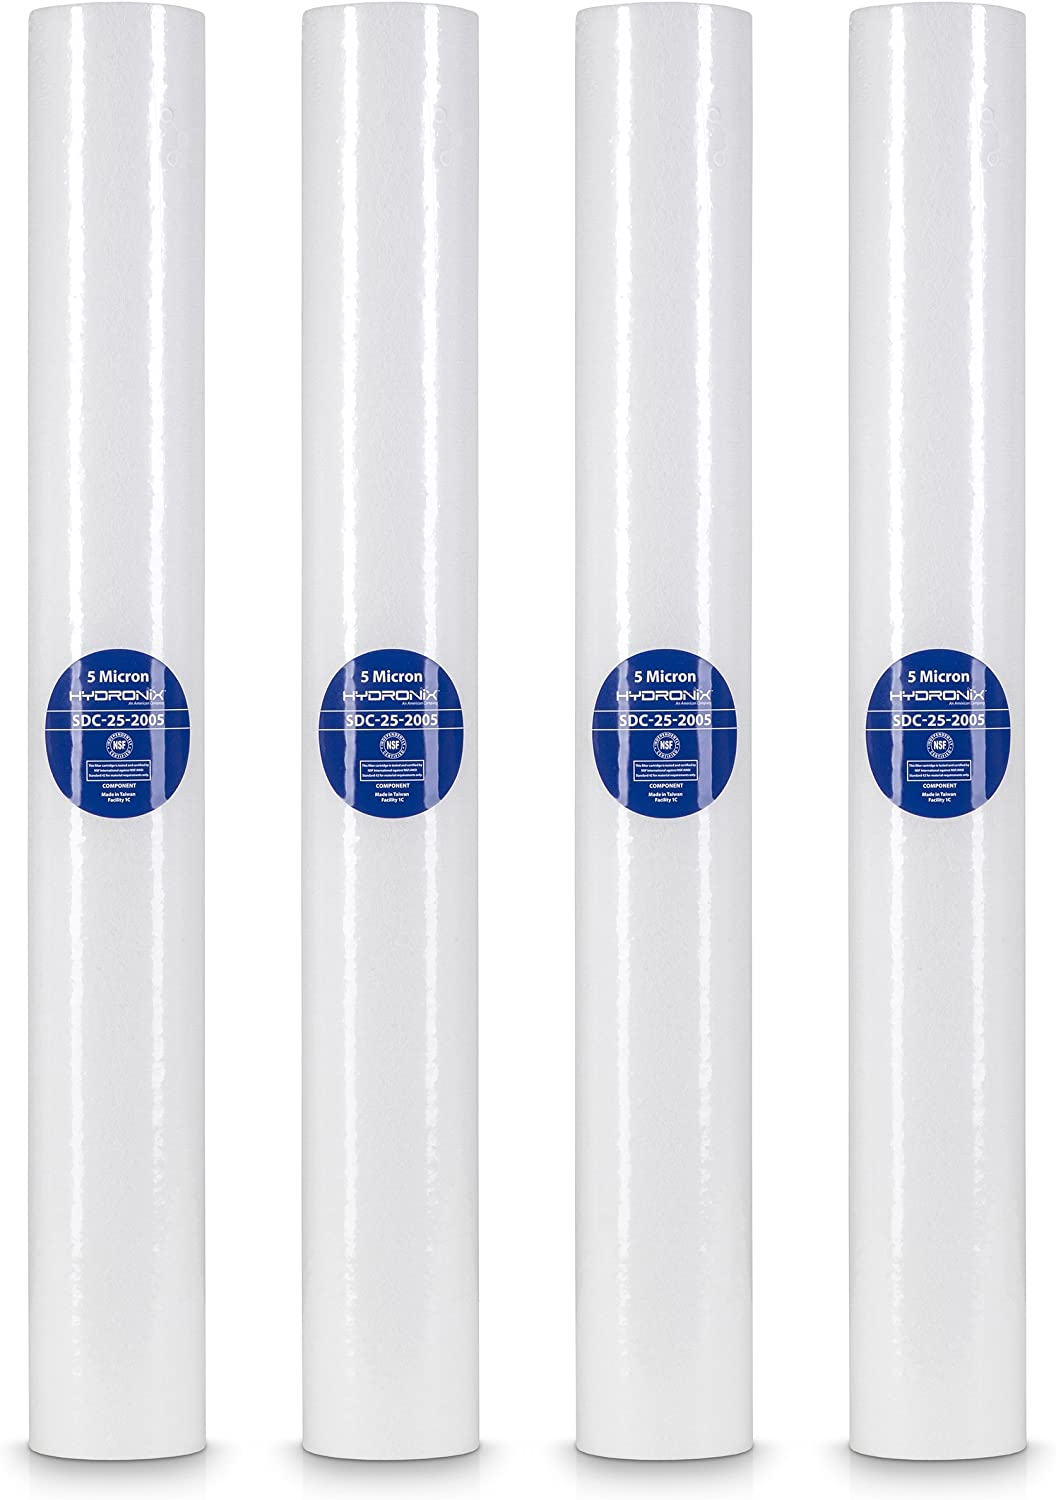 Hydronix SDC-25-2005//4 SDC-25-2005 4 pack sediment filters 2.5 x 20 2.5 x 20 white